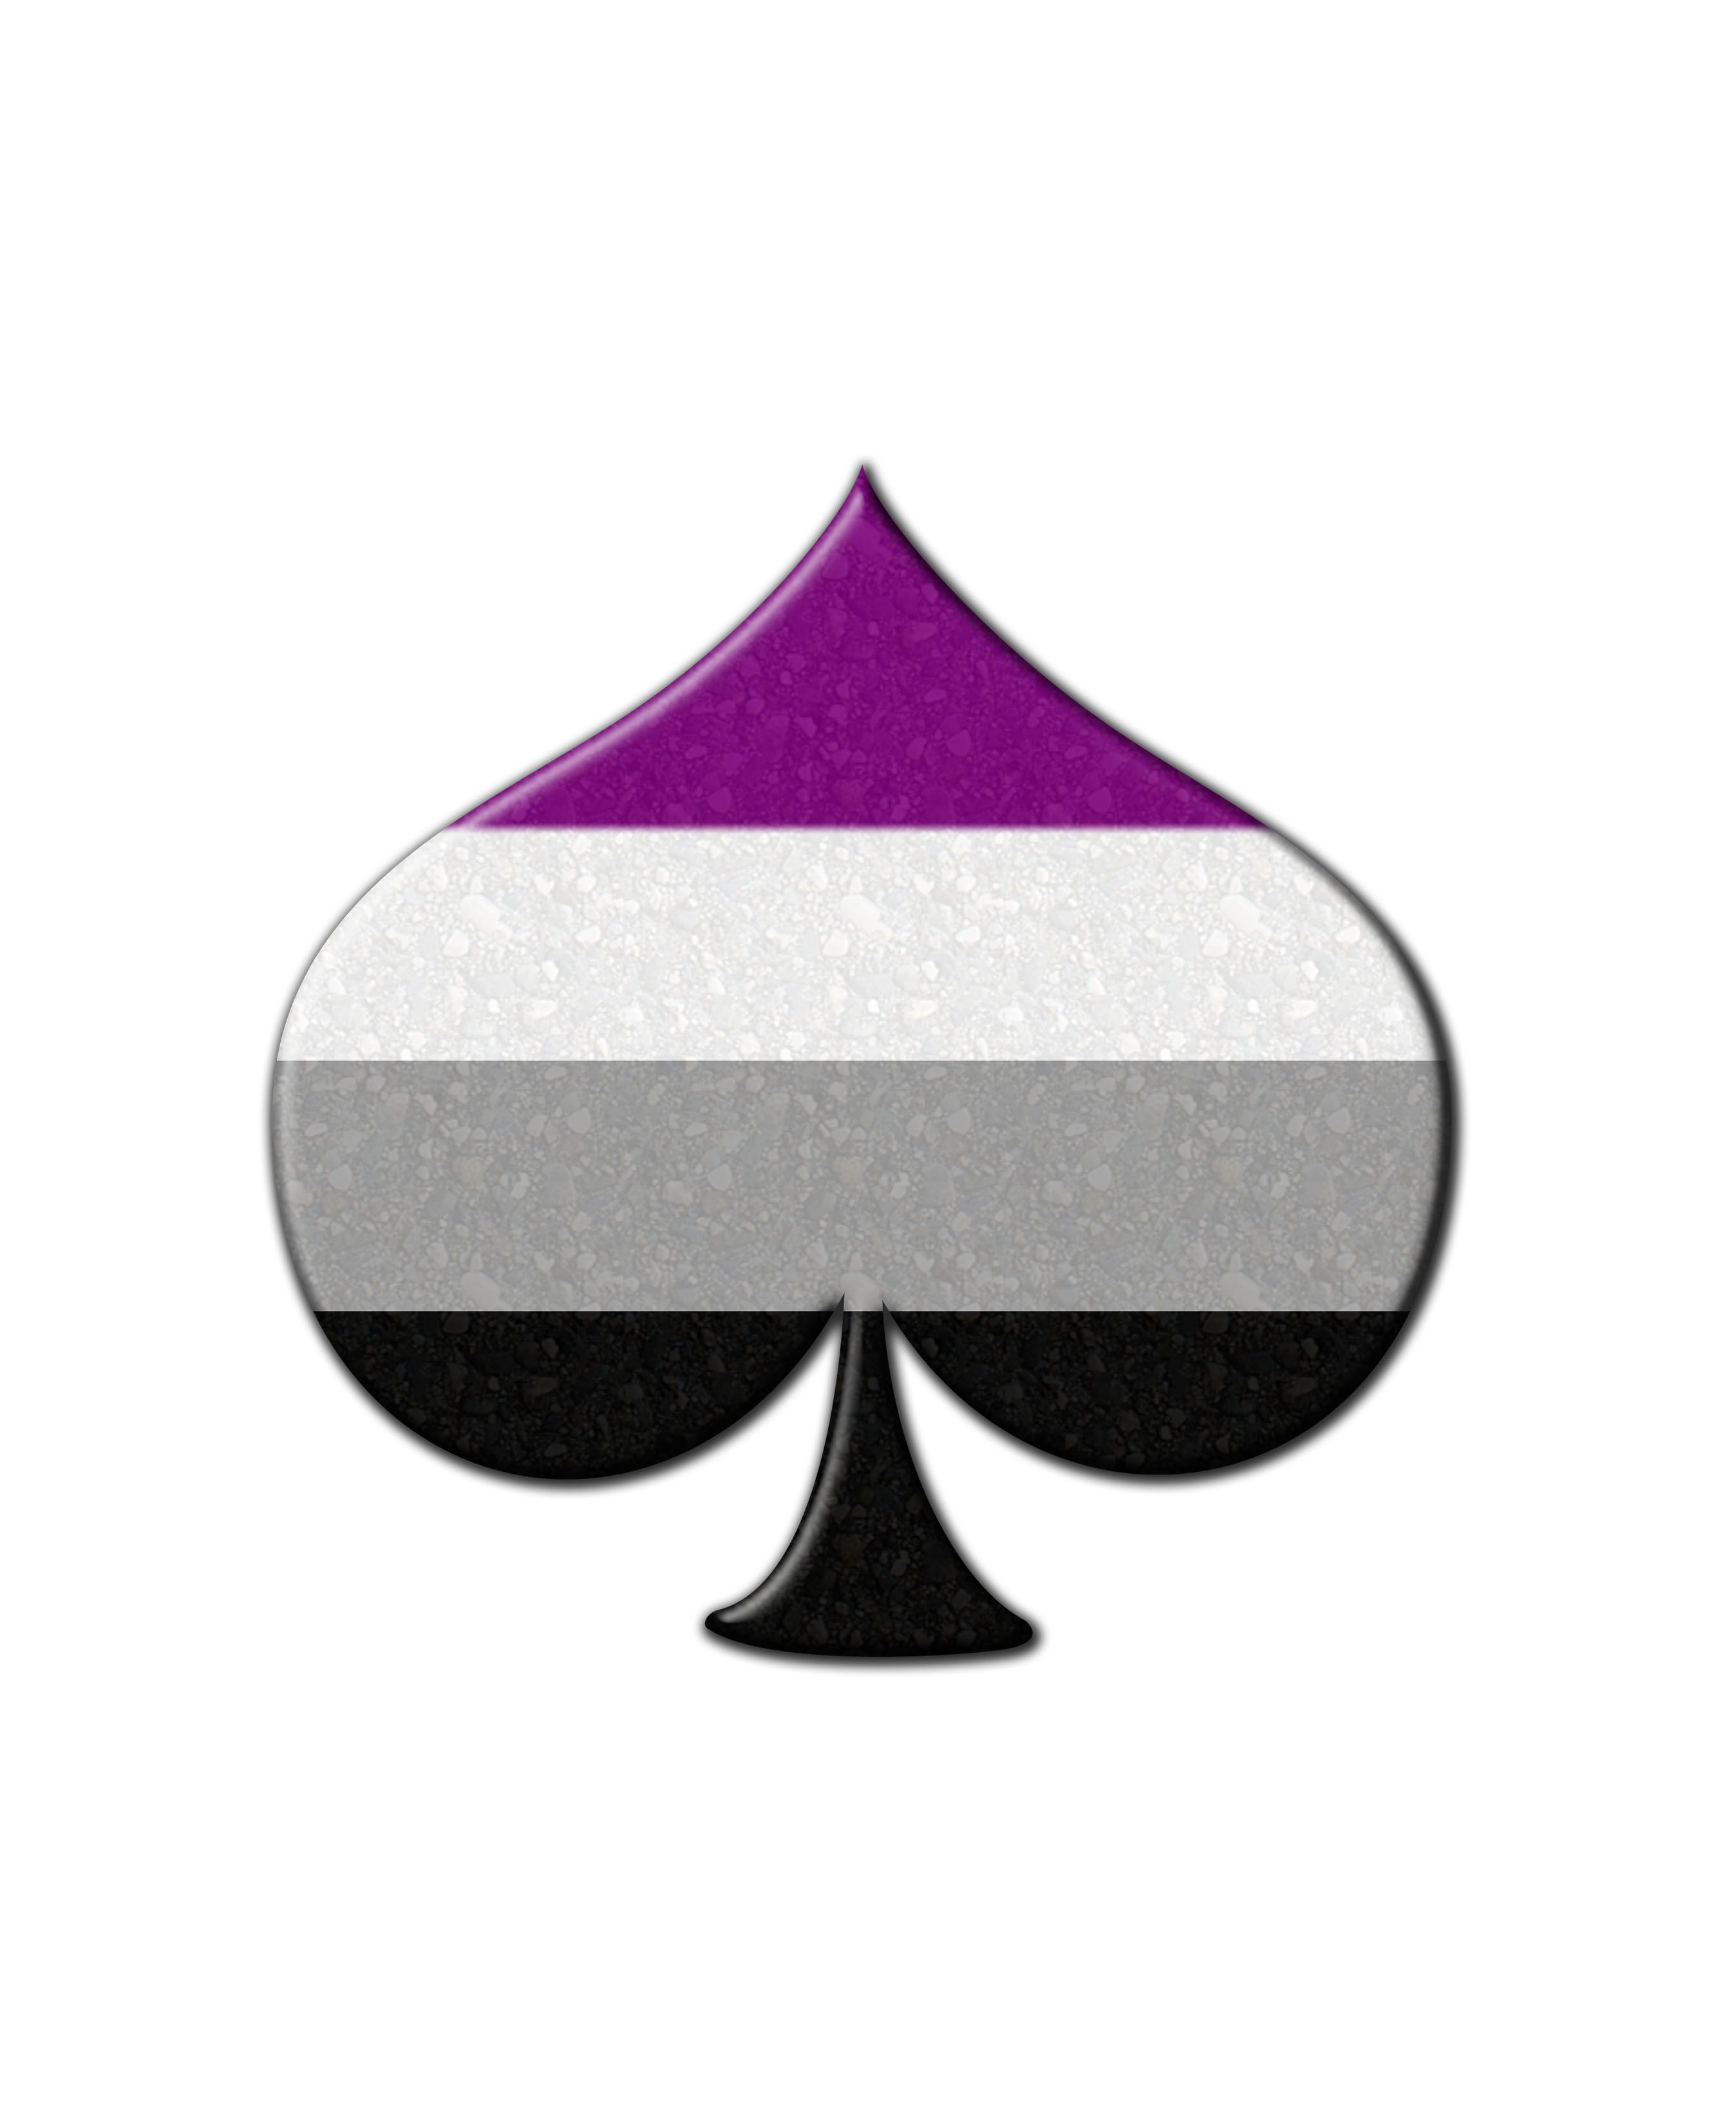 Asexual spade symbol in matching pride flag colors click to view asexual spade symbol in matching pride flag colors click to view merchandise available on zazzle biocorpaavc Choice Image